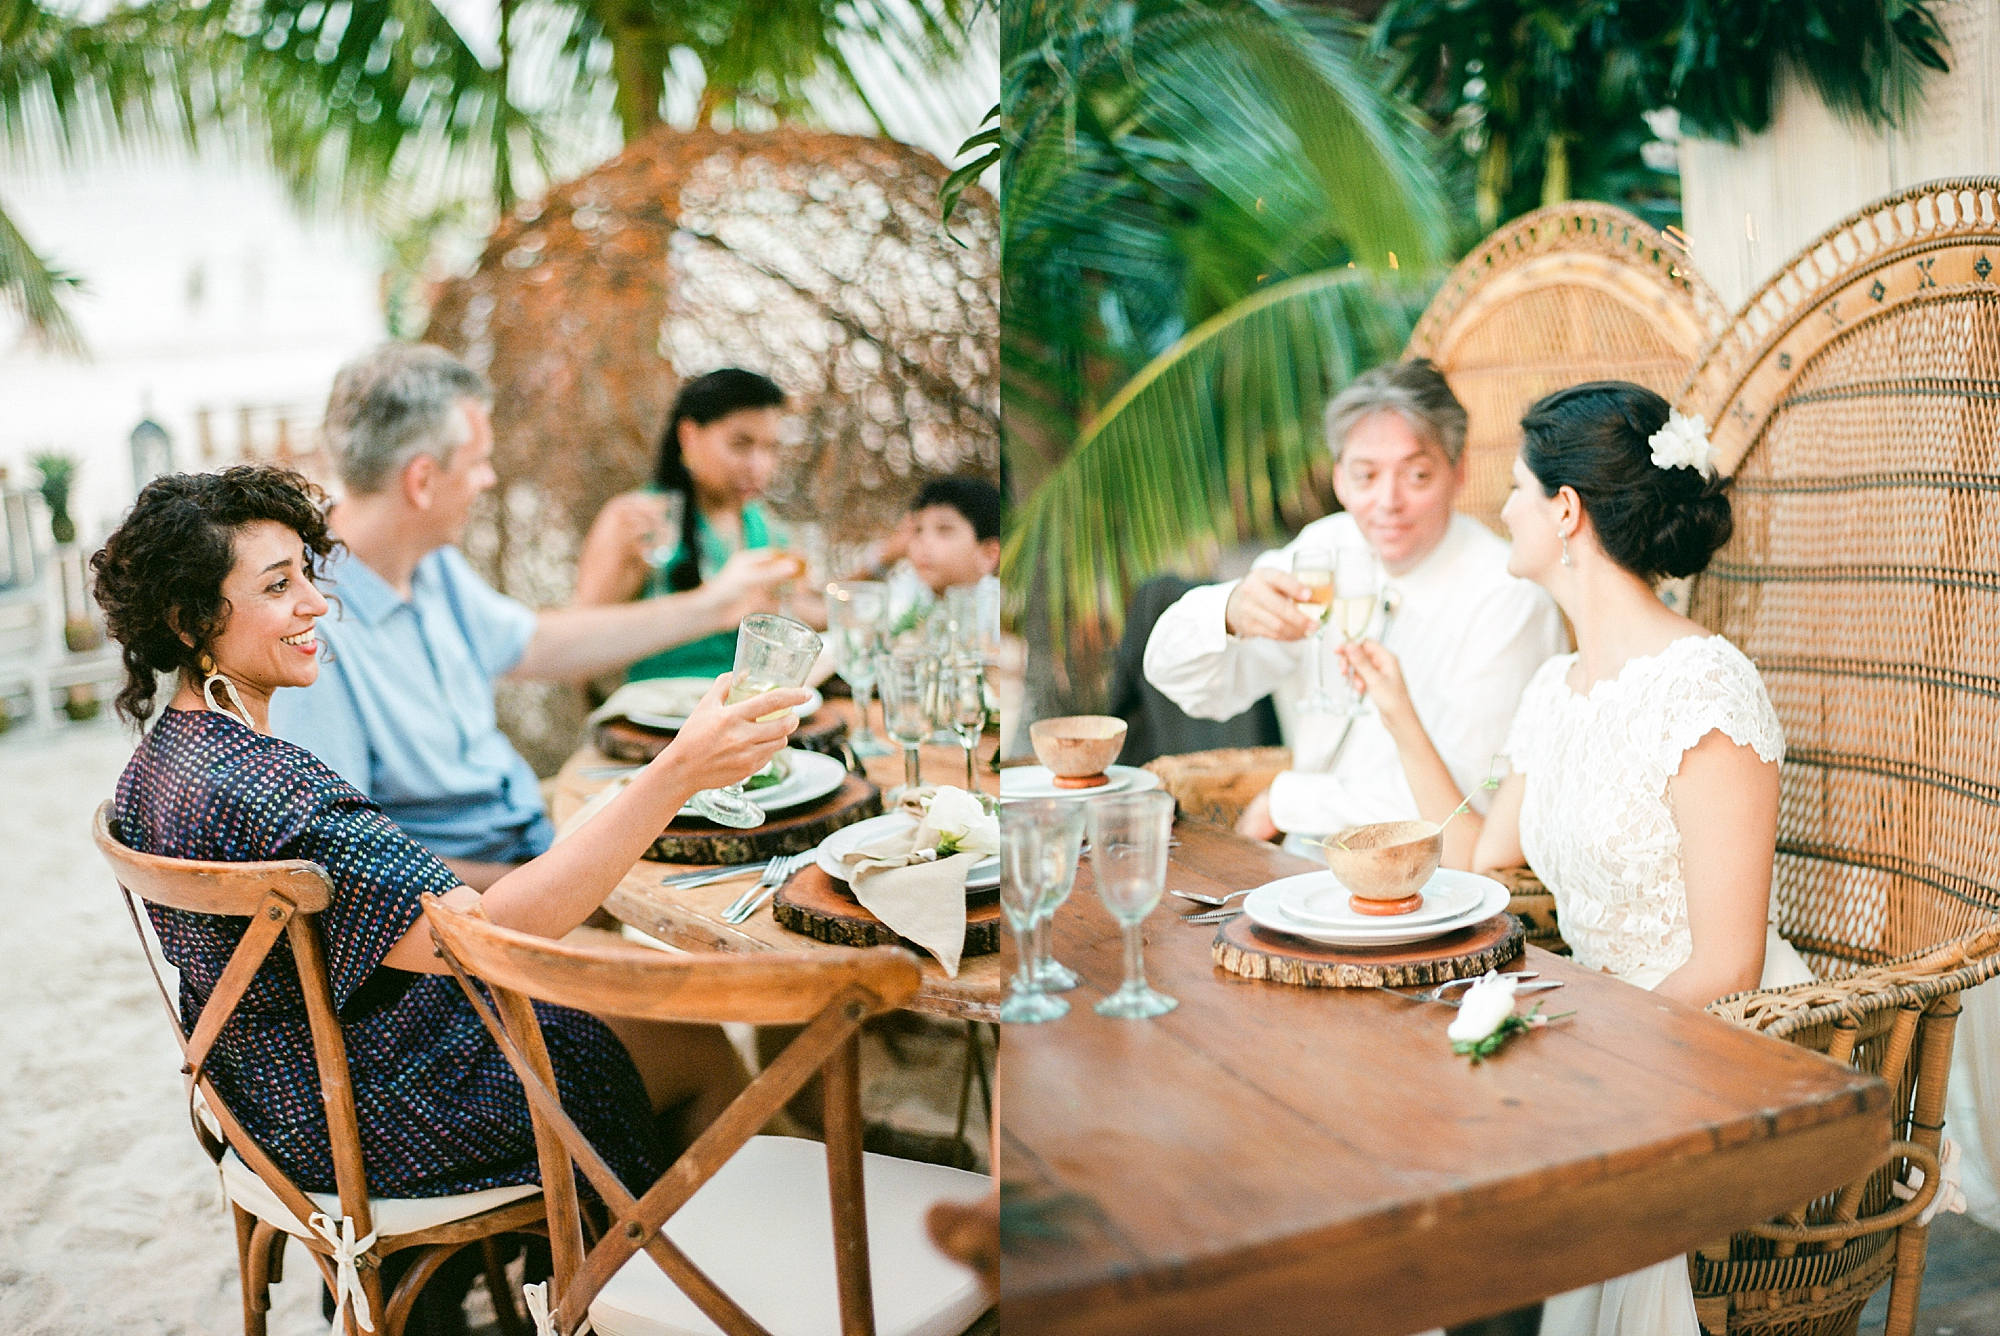 Stylish and Candid Destination Film Wedding Photography in Tulum Mexico by Magdalena Studios 0054.